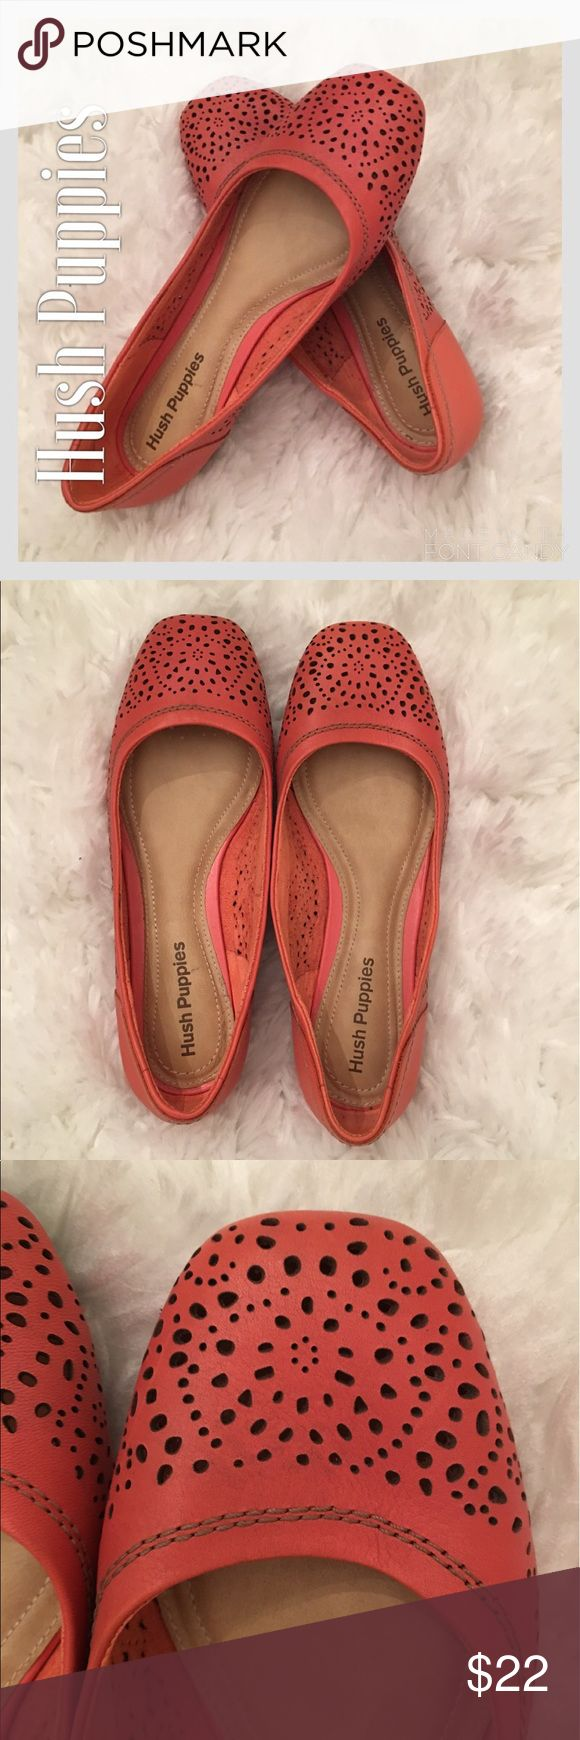 Hush Puppies Coral Ballet Slippers Hush Puppies Coral Ballet Slippers.  Like new. Hush Puppies Shoes Flats & Loafers